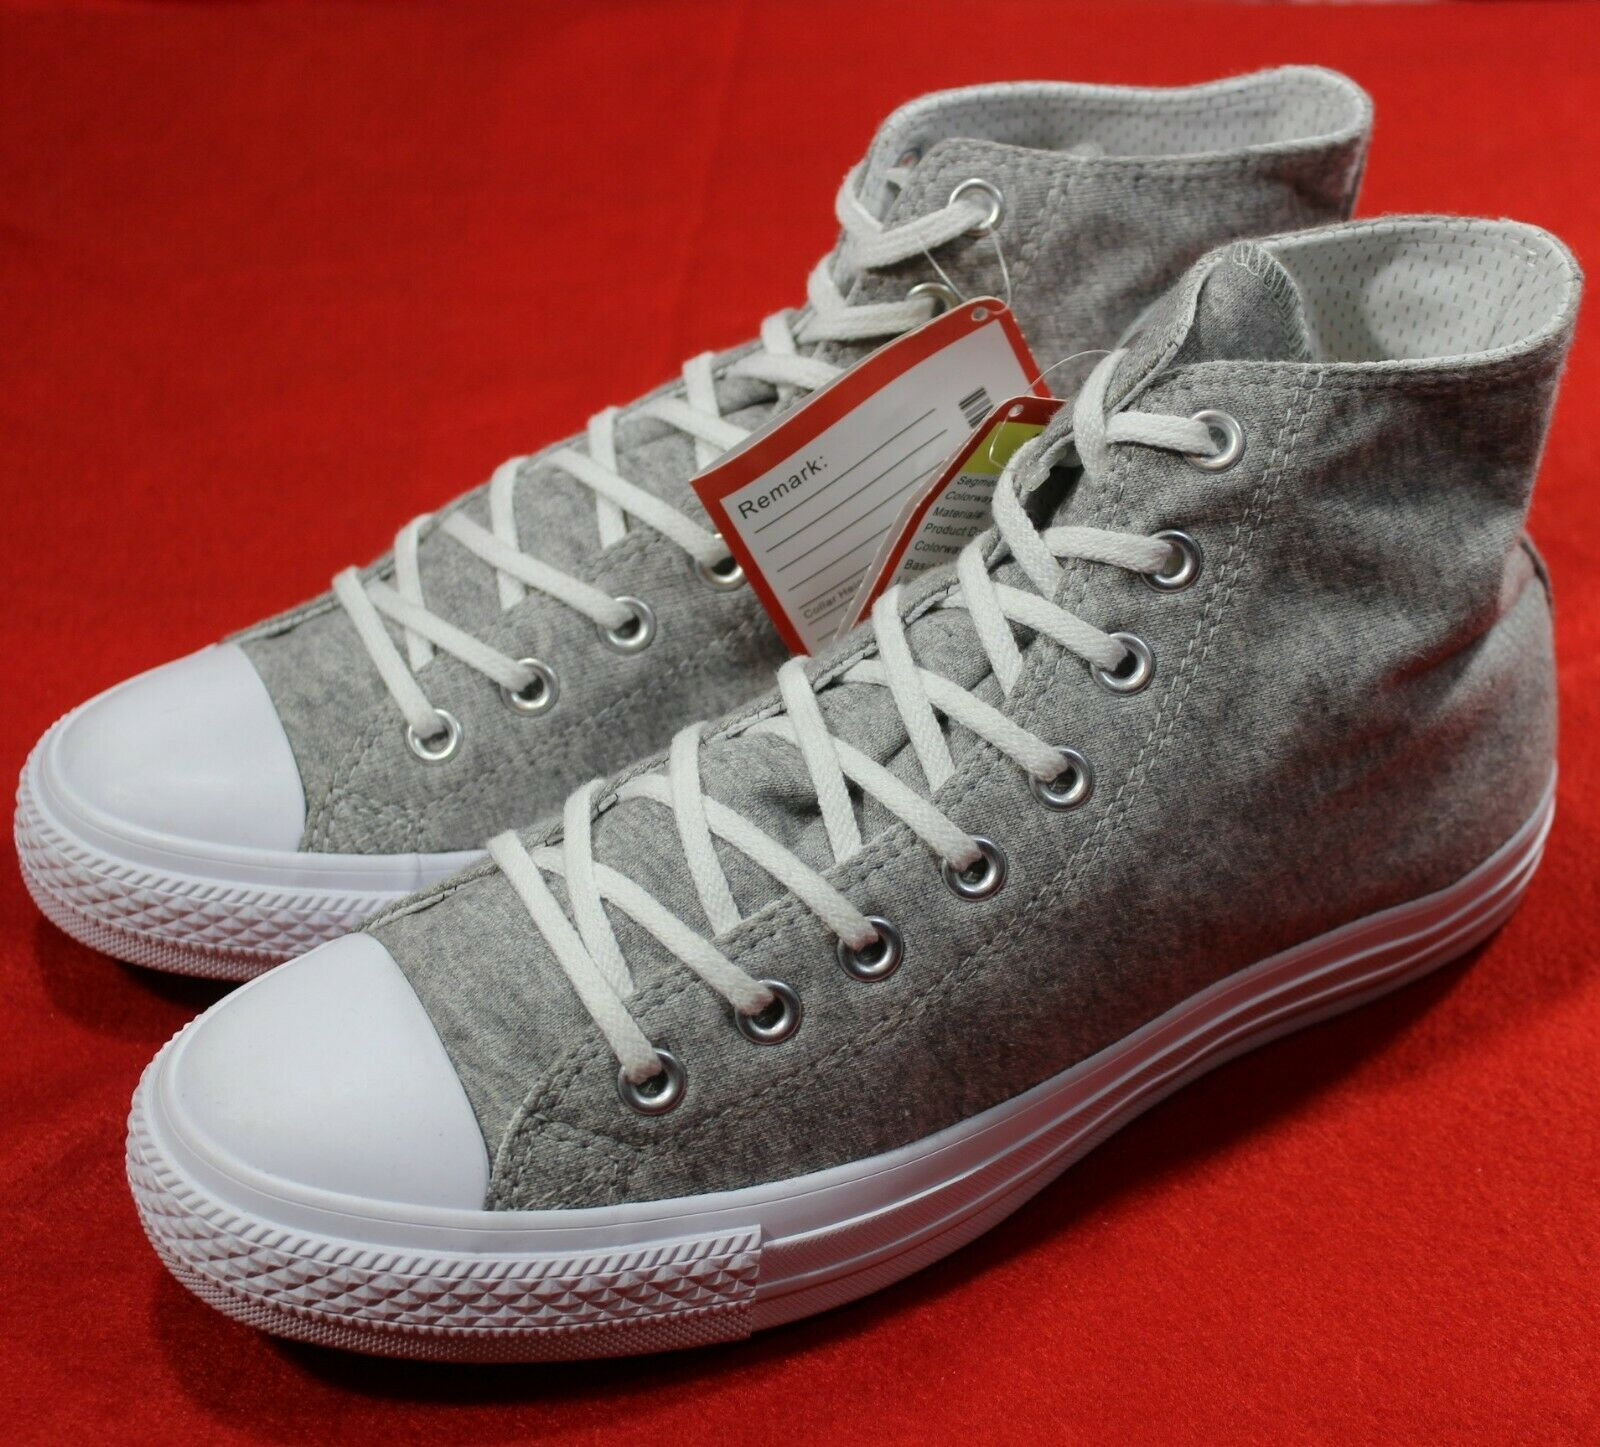 Primary image for CONVERSE SAMPLE Chuck Taylor ALL-STAR II 2 HI Canvas Denim GREY [159635C] size 9